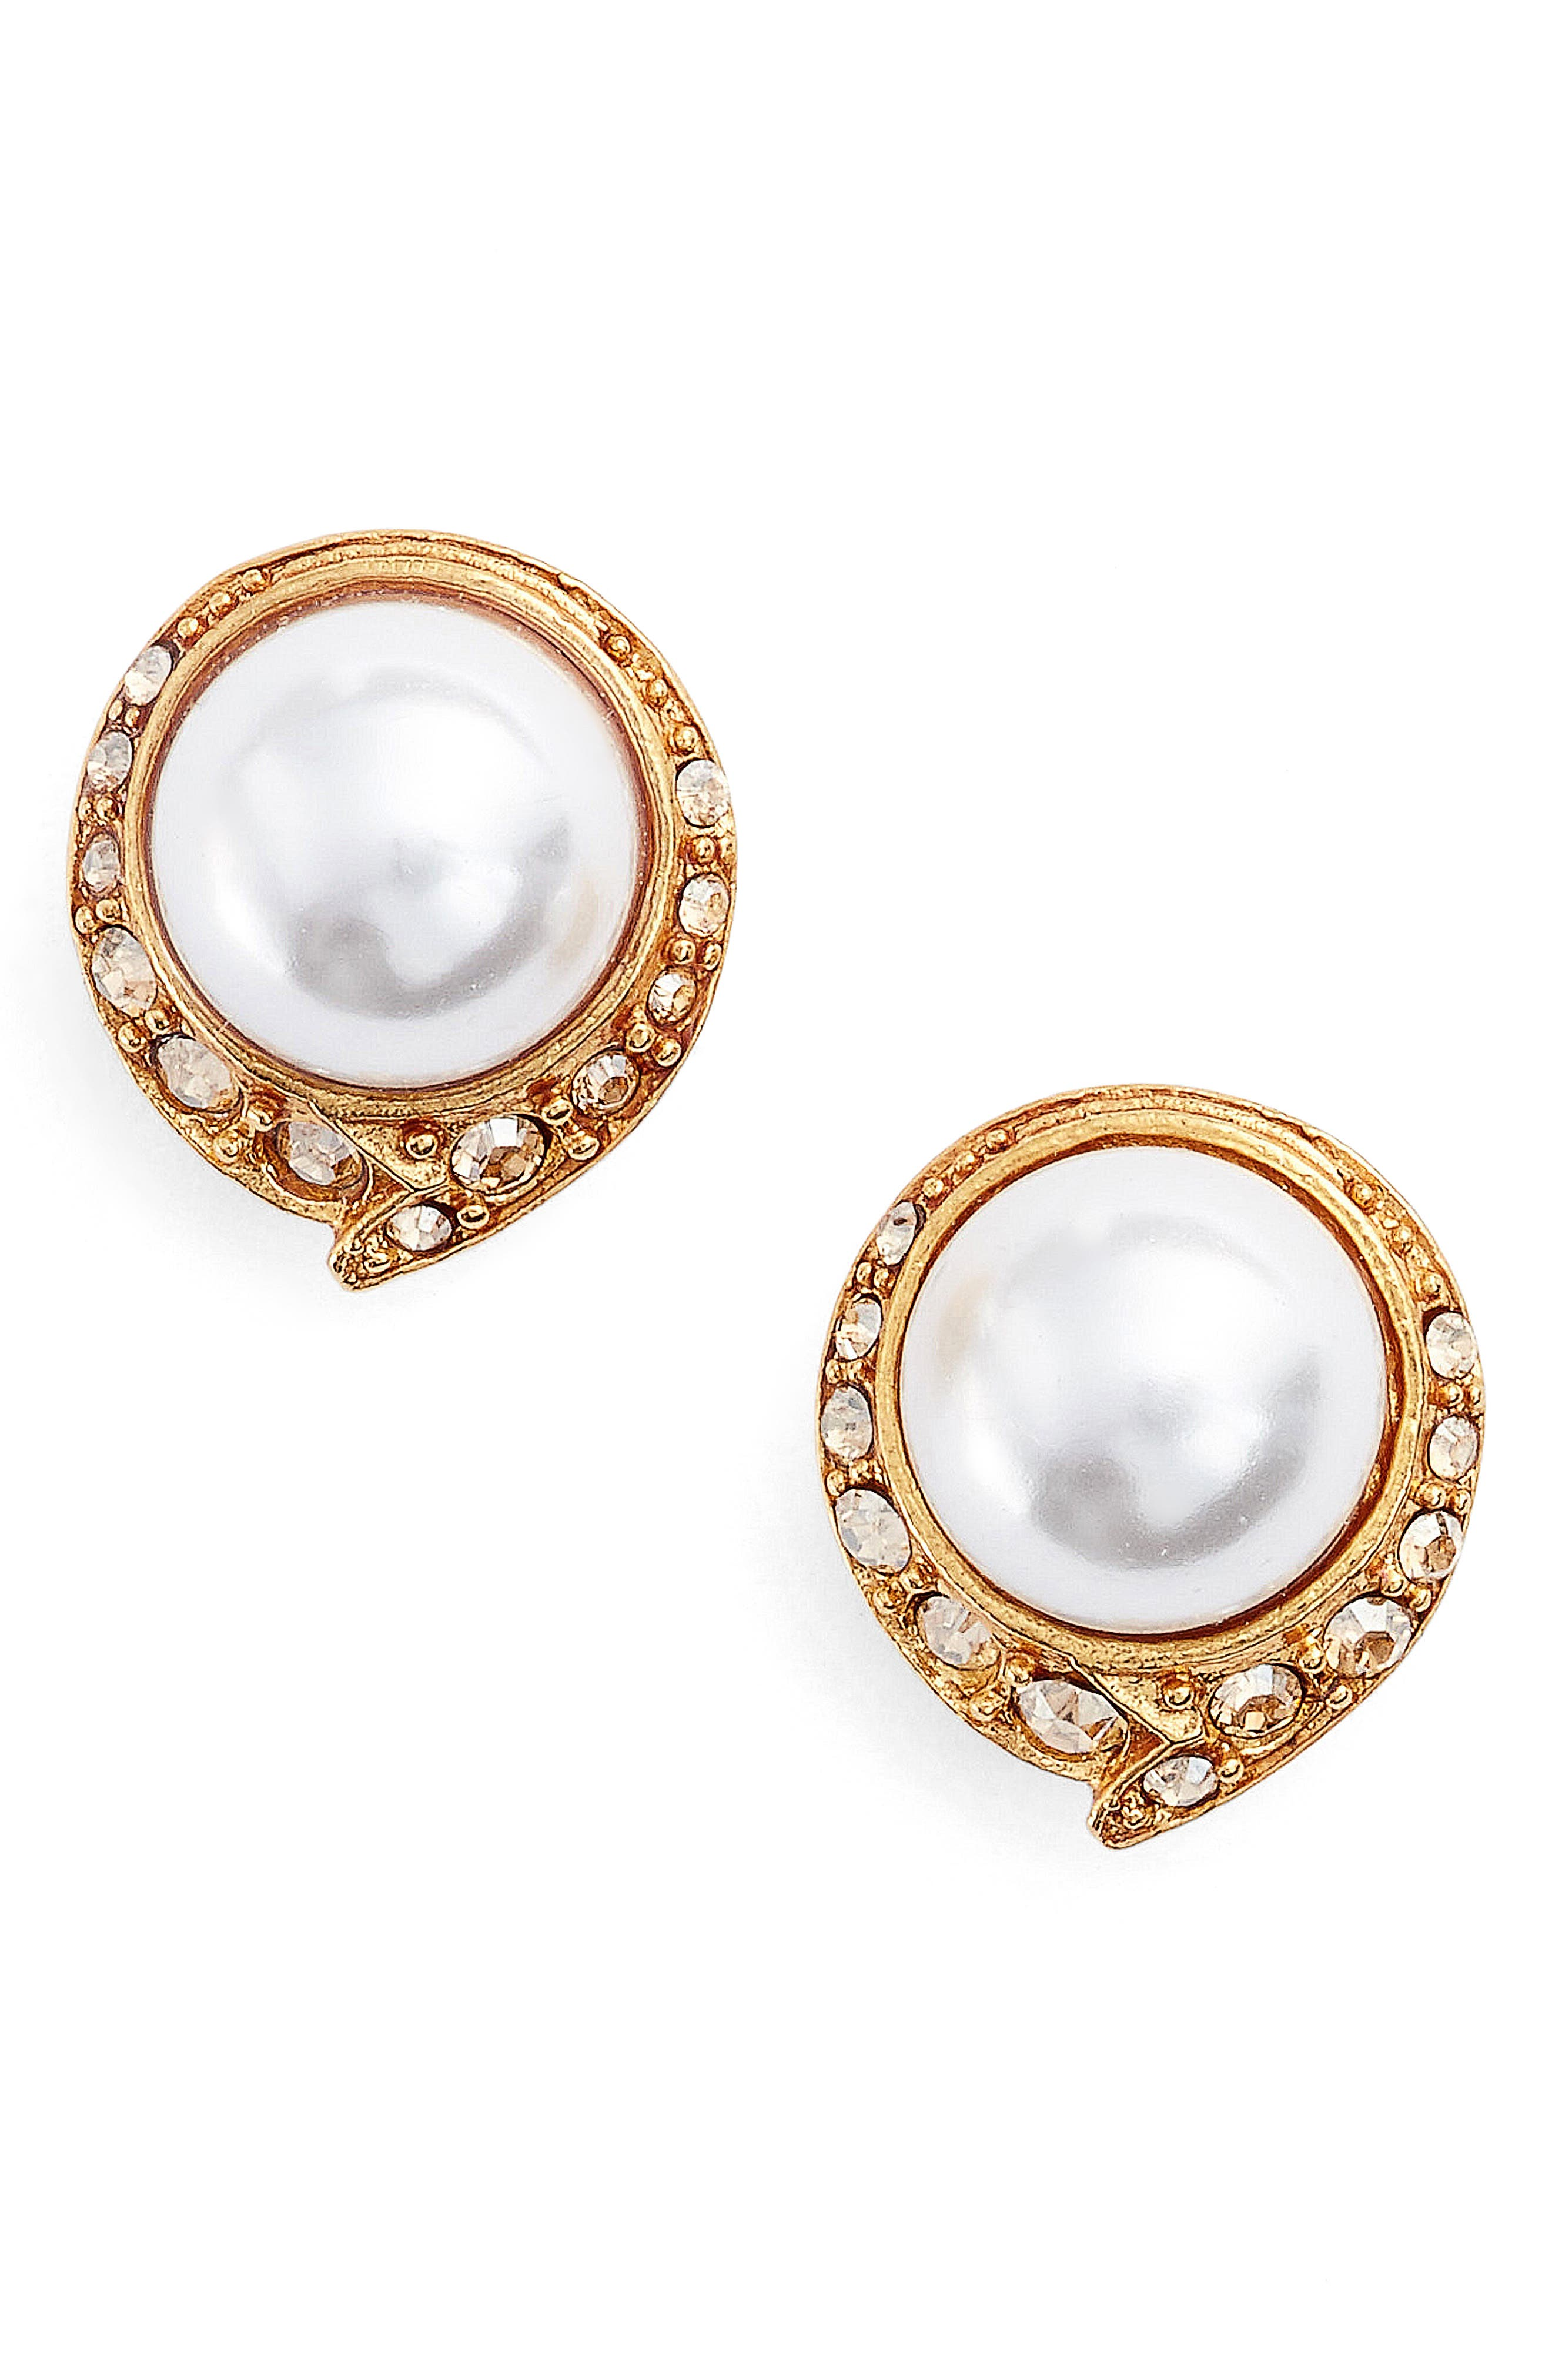 Simulated Pearl Stud Earrings,                         Main,                         color, Crystal Gold Shadow